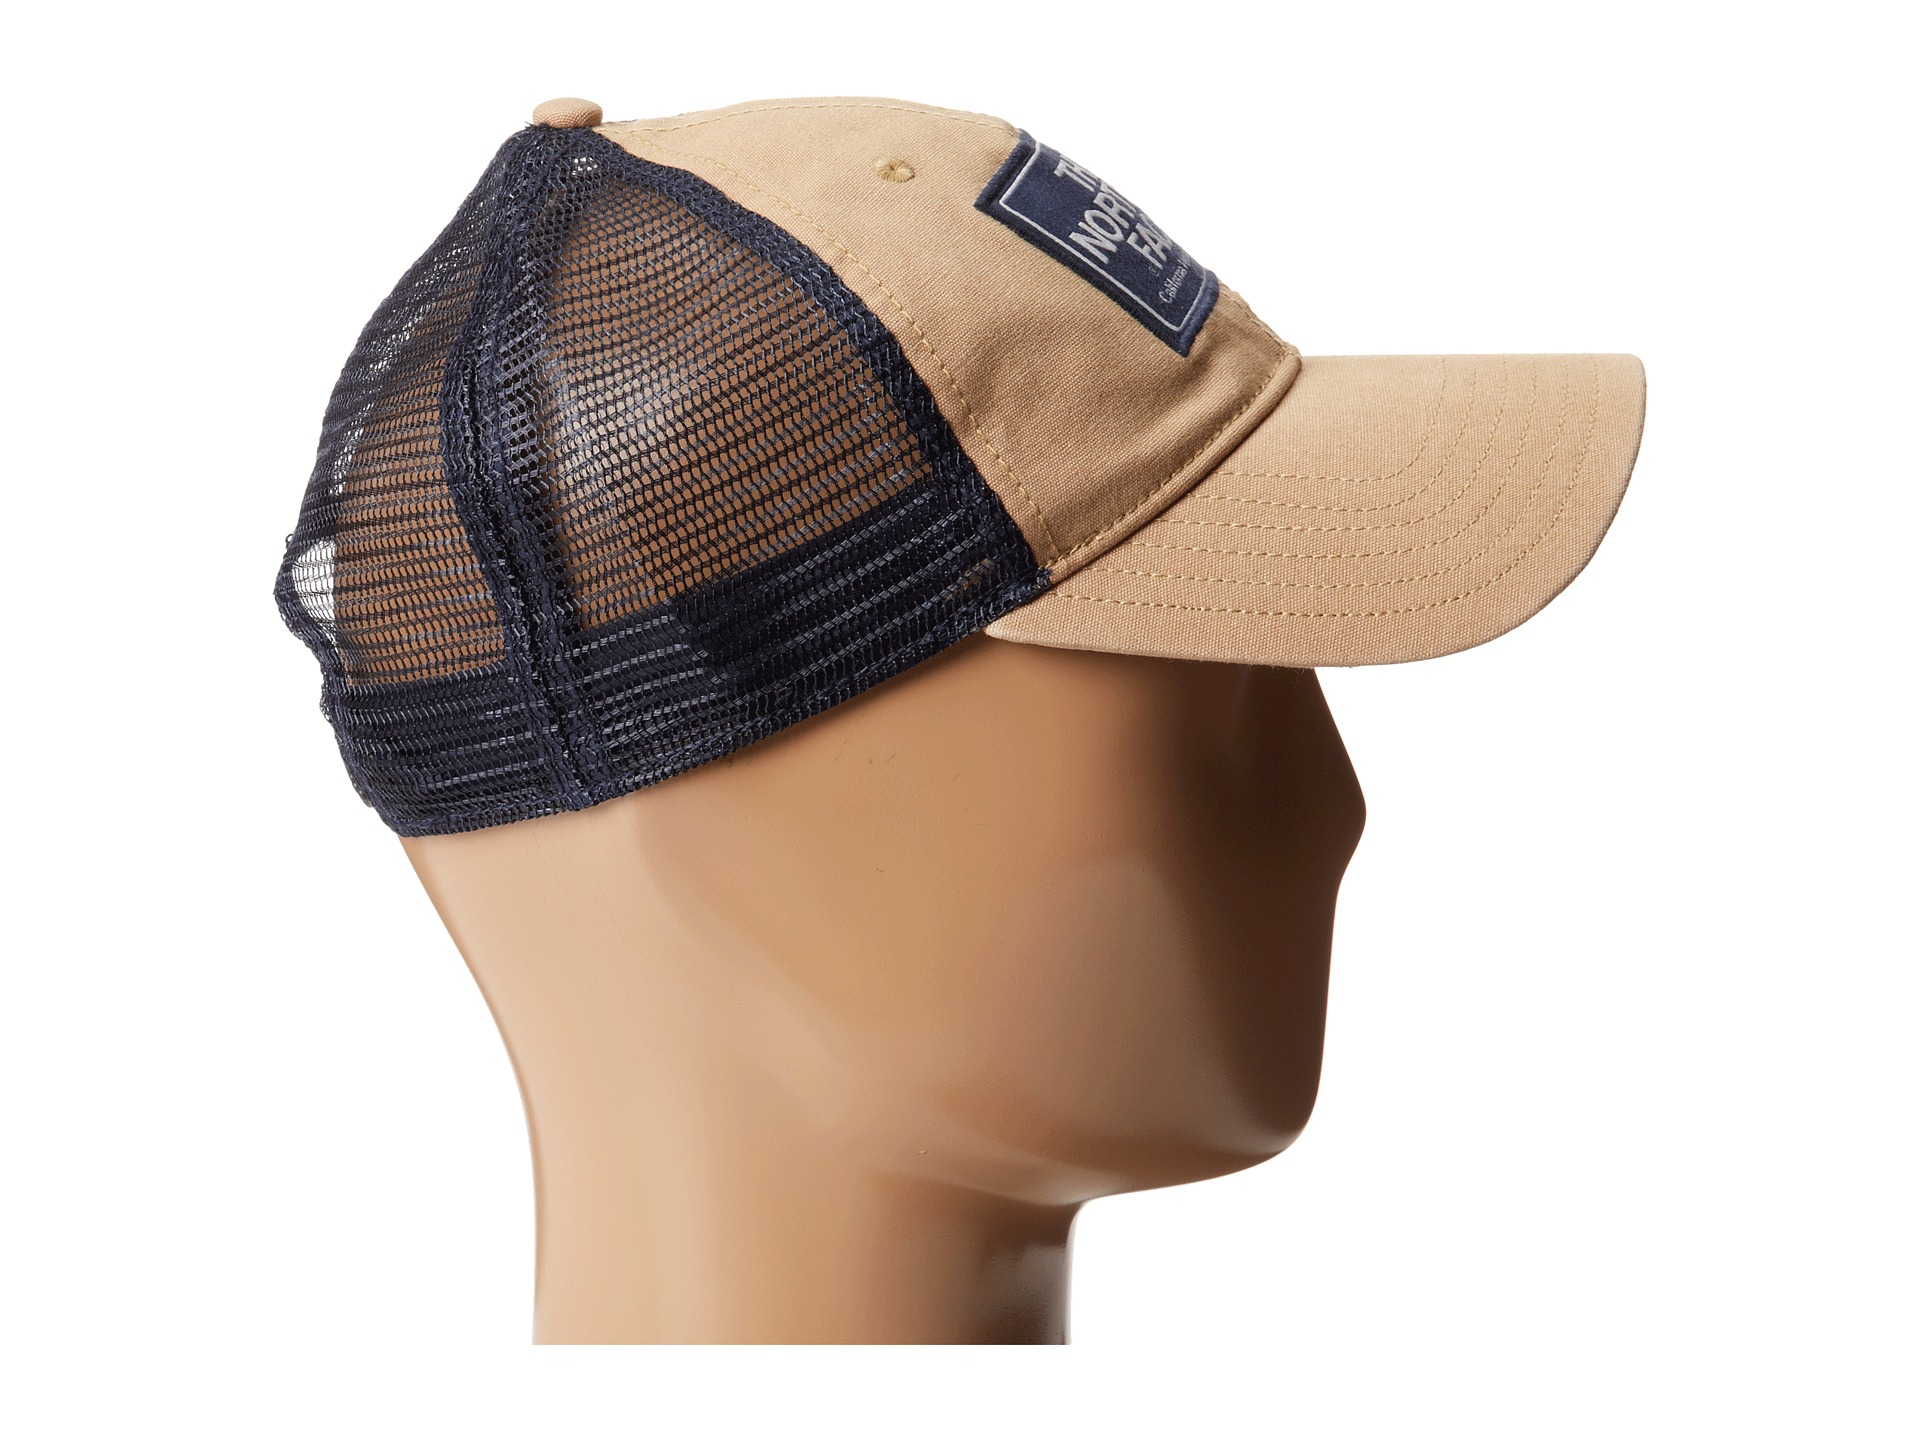 db625d2a427 Czapka The North Face Mudder Trucker Hat - british khaki estate blue The  North Face